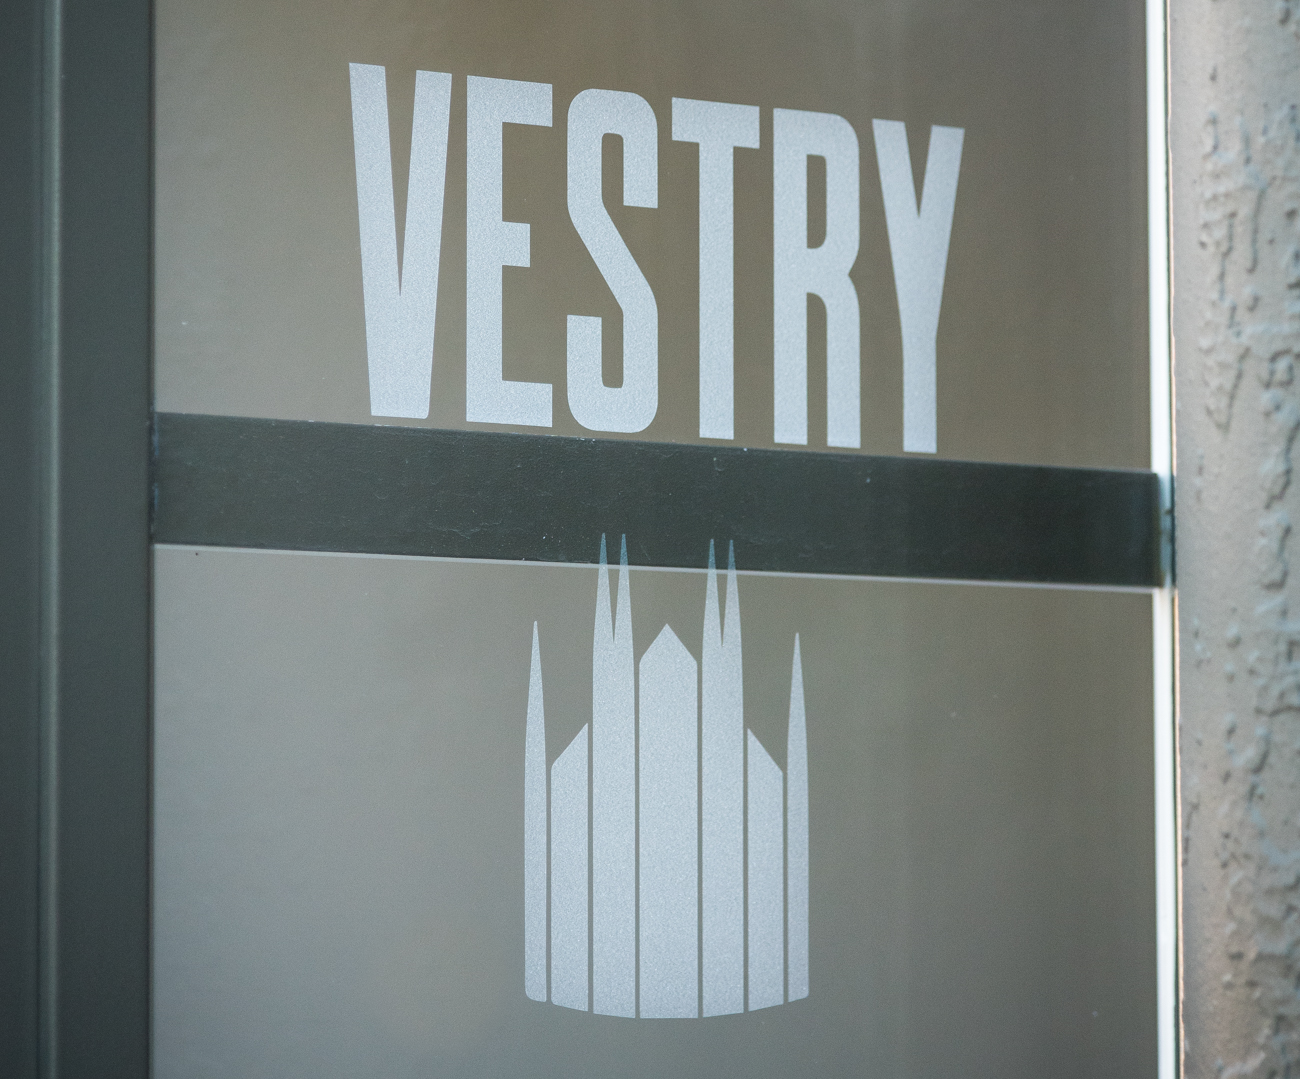 The Vestry is a sophisticated bar located inside of the Transept at the corner of Elm and 12th Streets. The bar is elegant and comfortable, and features a variety of exclusive cocktails made by skilled bartenders. While the Transept takes up the majority of the recently-rehabbed building, you can find the Vestry at street level in the corner facing Washington Park. ADDRESS: 1205 Elm Street, Cincinnati, OH 45202 / Image: Phil Armstrong, Cincinnati Refined / Published: 11.9.16